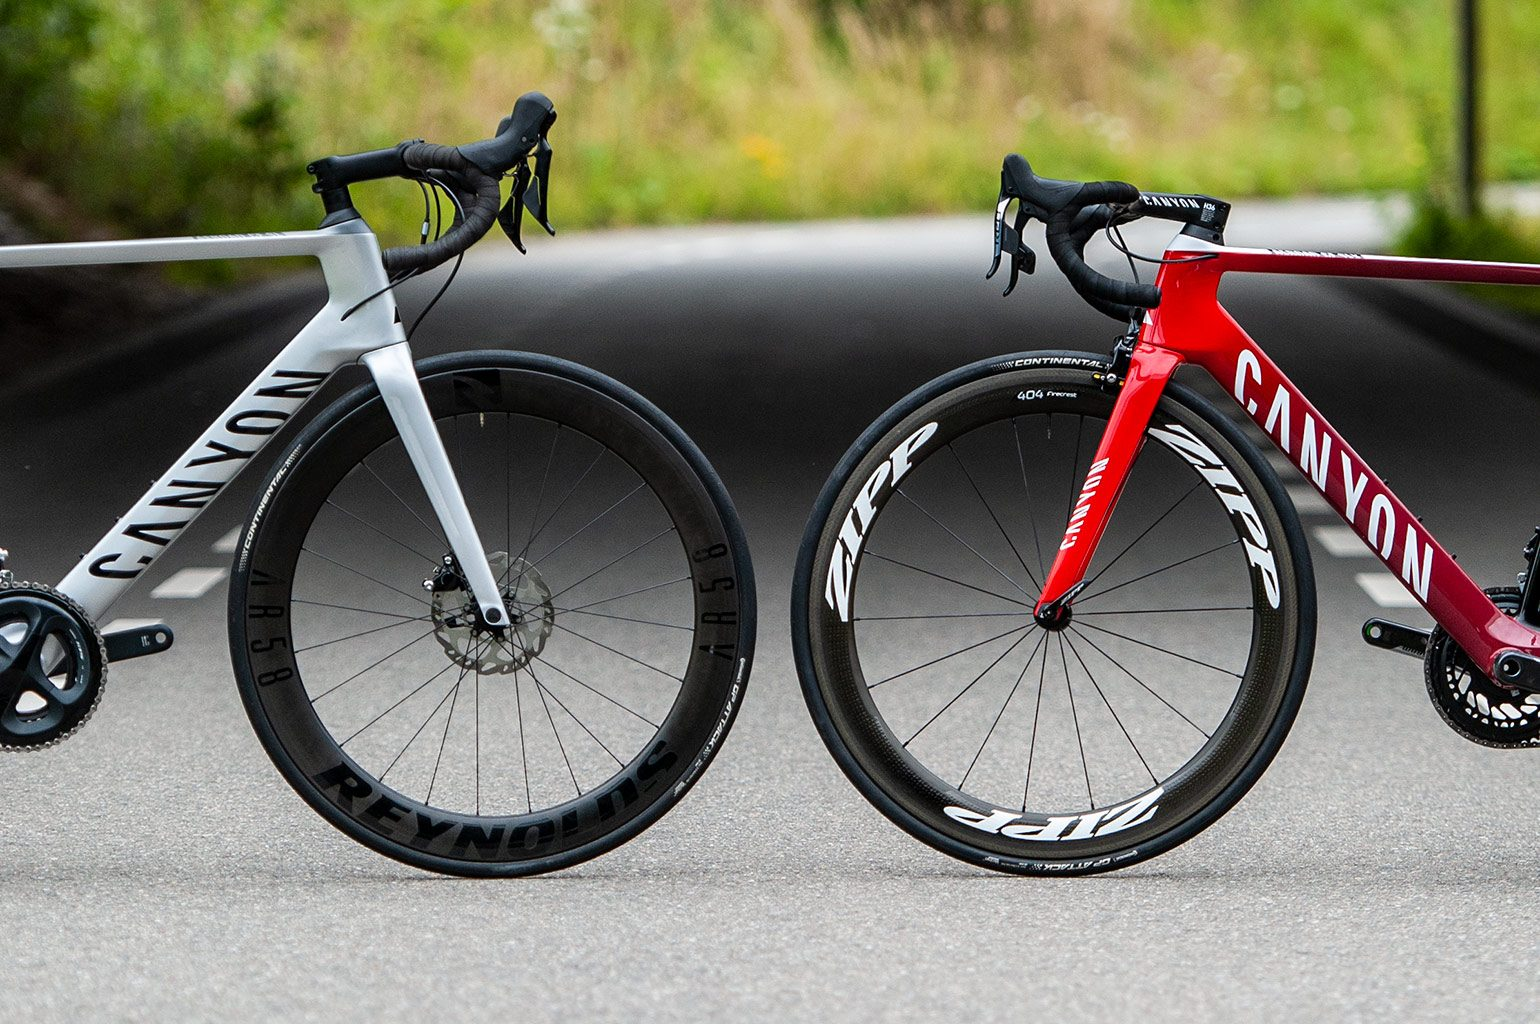 Canyon Aeroad CF SL 7.0 vs Canyon Aeroad CF SLX 9.0 SL